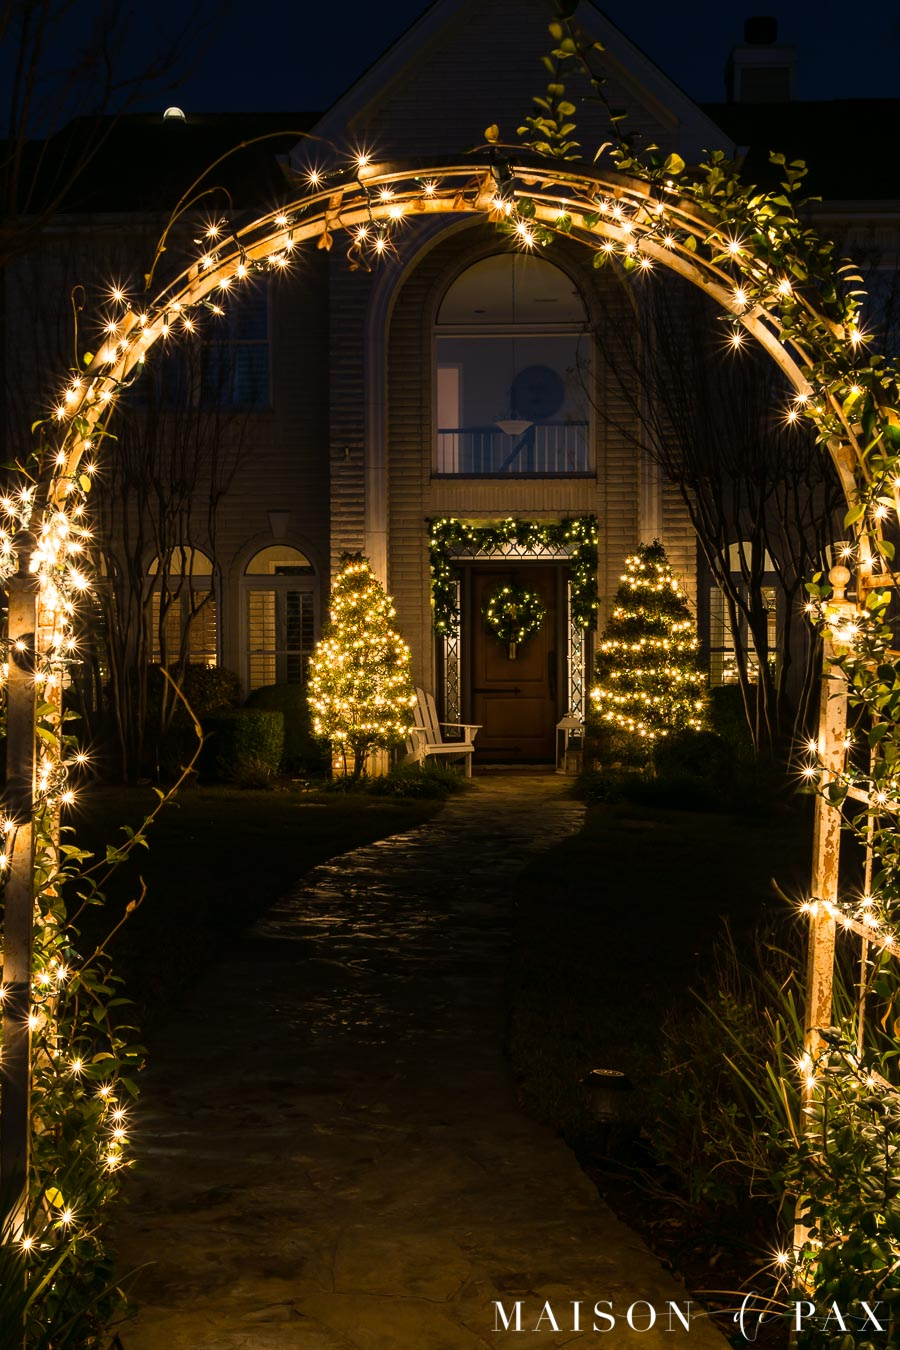 lit archway in front yard of house lit up with Christmas lights | Maison de Pax